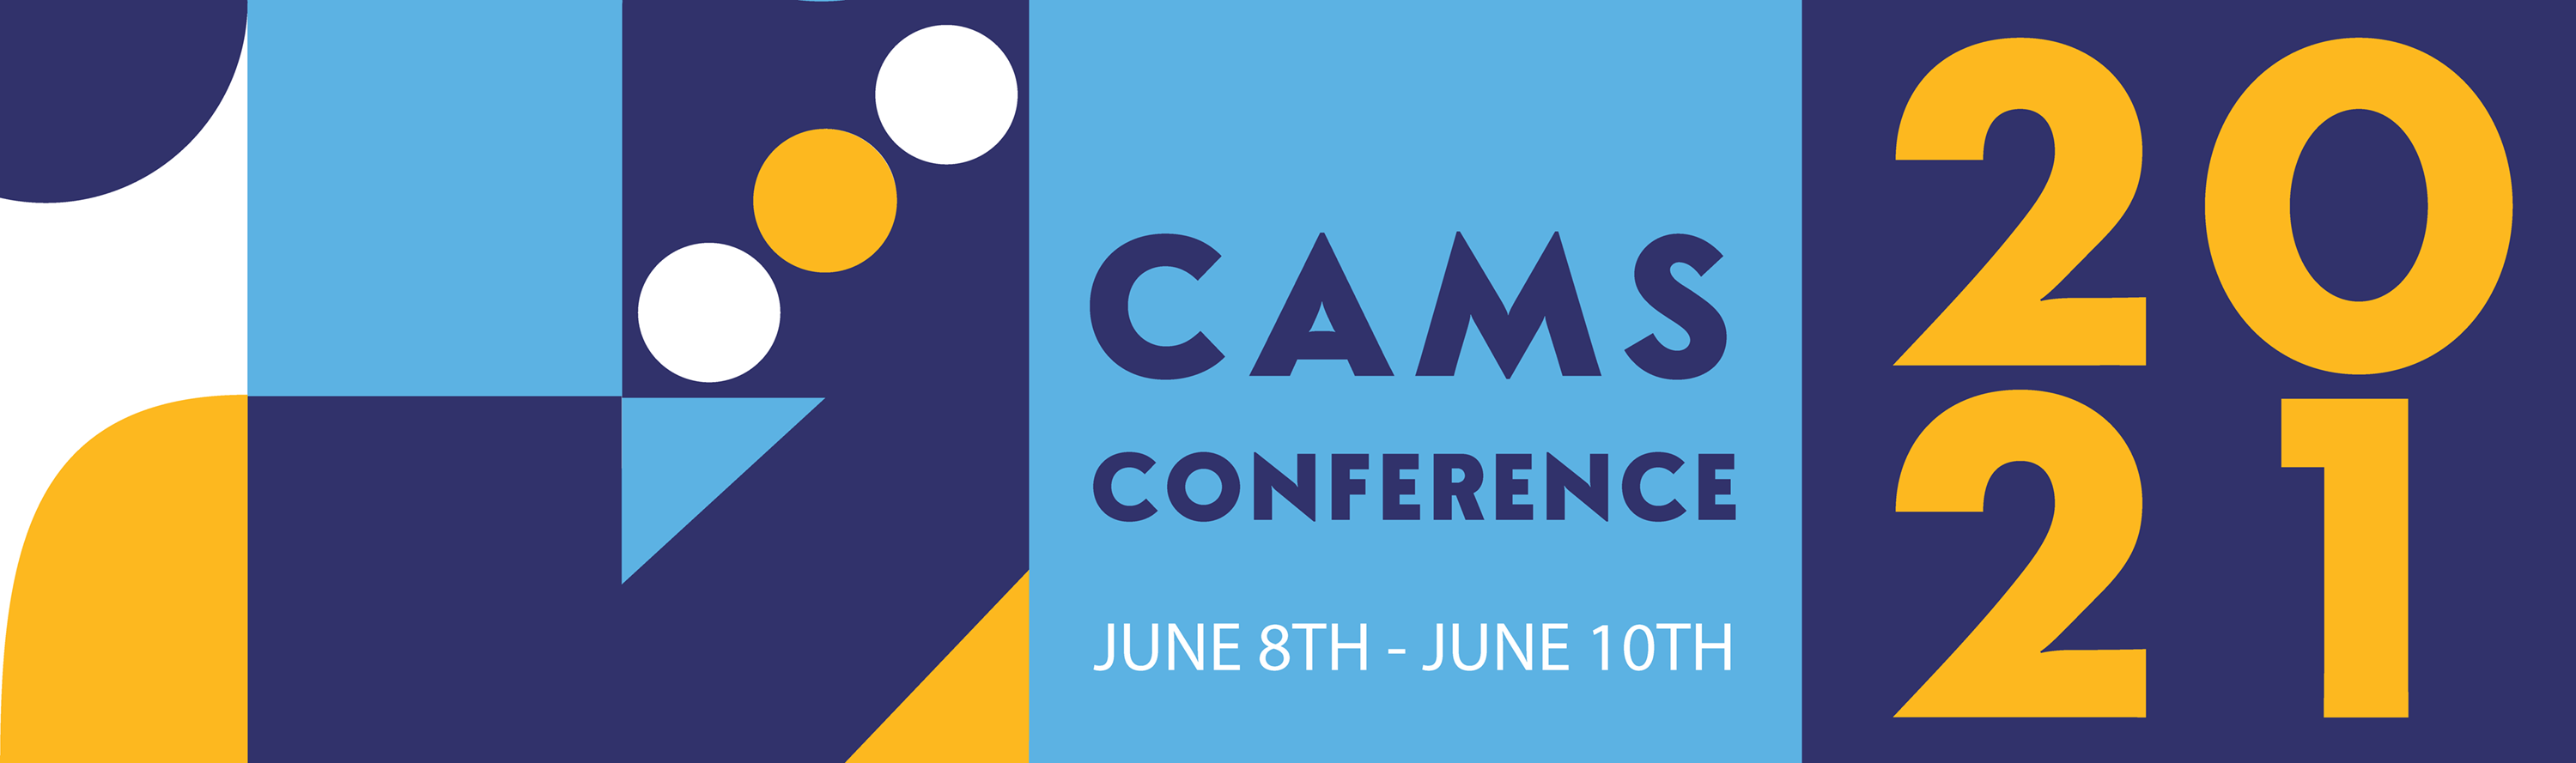 CAMS Conference 2021 June 8th - 10th